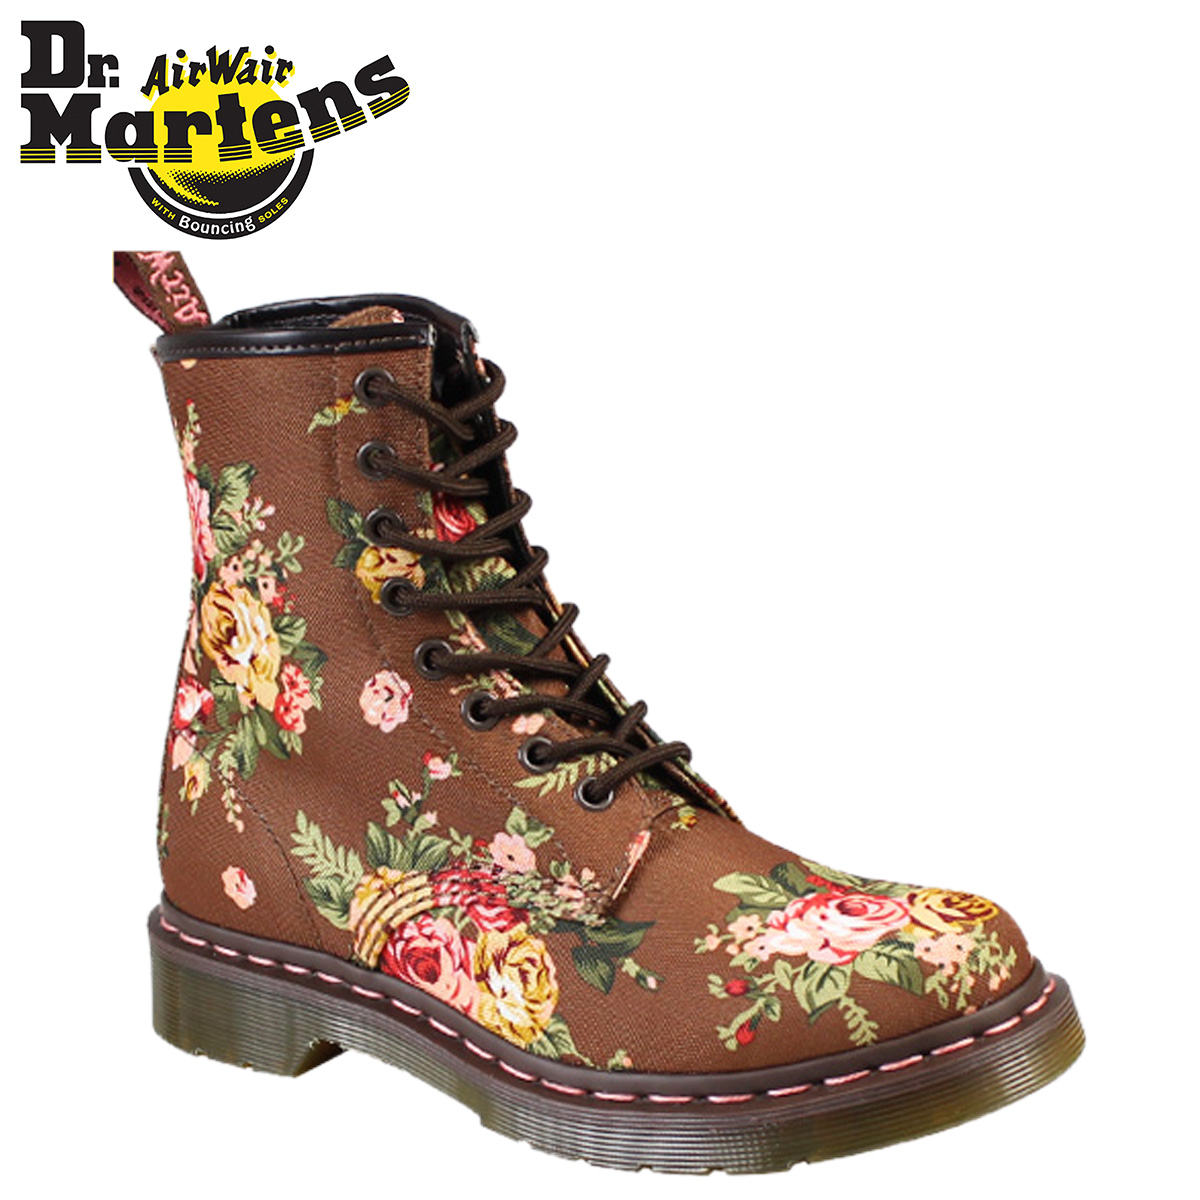 Dr.Martens doctor Martin 1460 8 hall boots Lady's WOMENS 8 EYE BOOT R11821260